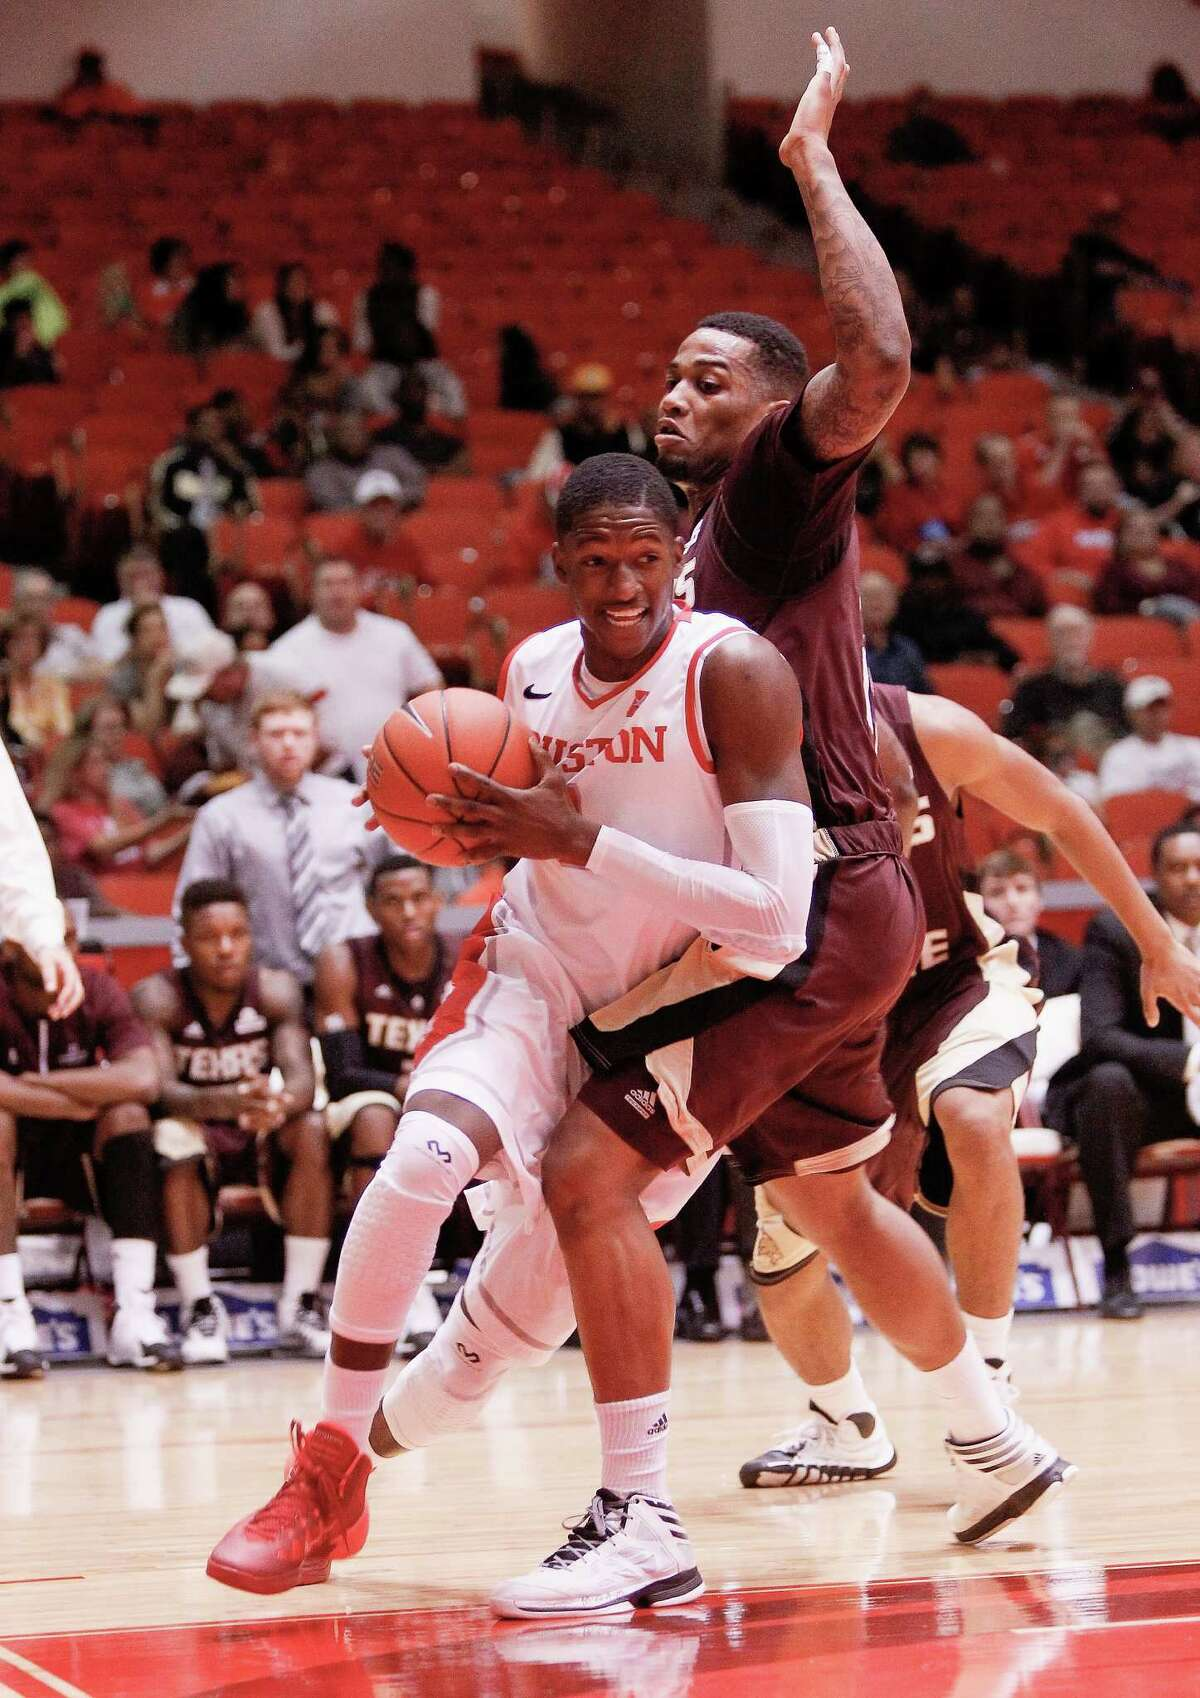 Houston Cougars forward Mikhail McLean drives around Texas State Bobcats forward Corey Stern in the first half during an NCAA mens basketball game between the Texas State Bobcats and the University of Houston Cougars at Hofheinz Pavilion, Friday, Nov. 8, 2013. (Bob Levey/Special to the Chronicle)